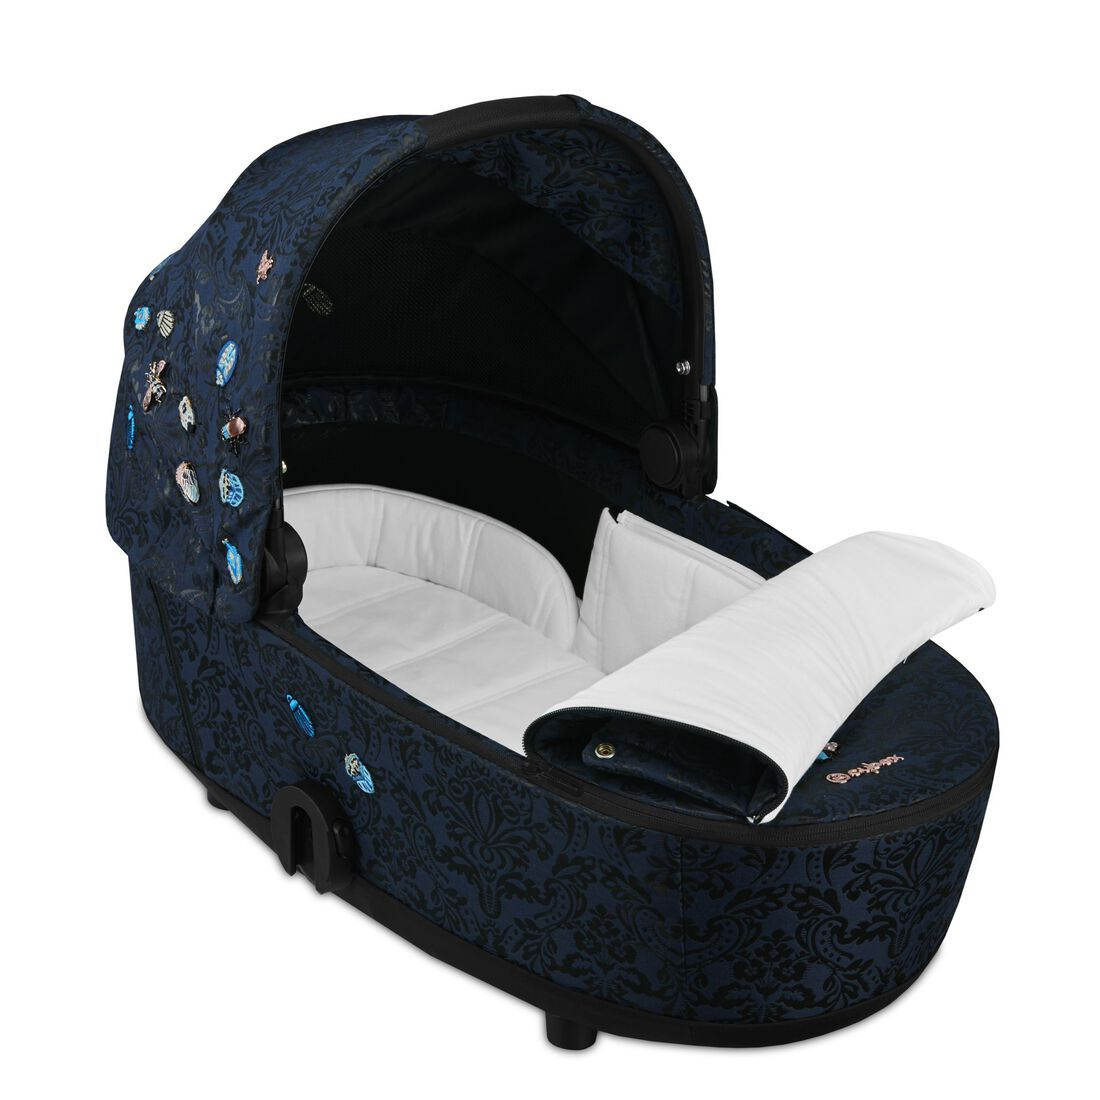 CYBEX Mios Lux Carry Cot - Jewels of Nature in Jewels of Nature large image number 2